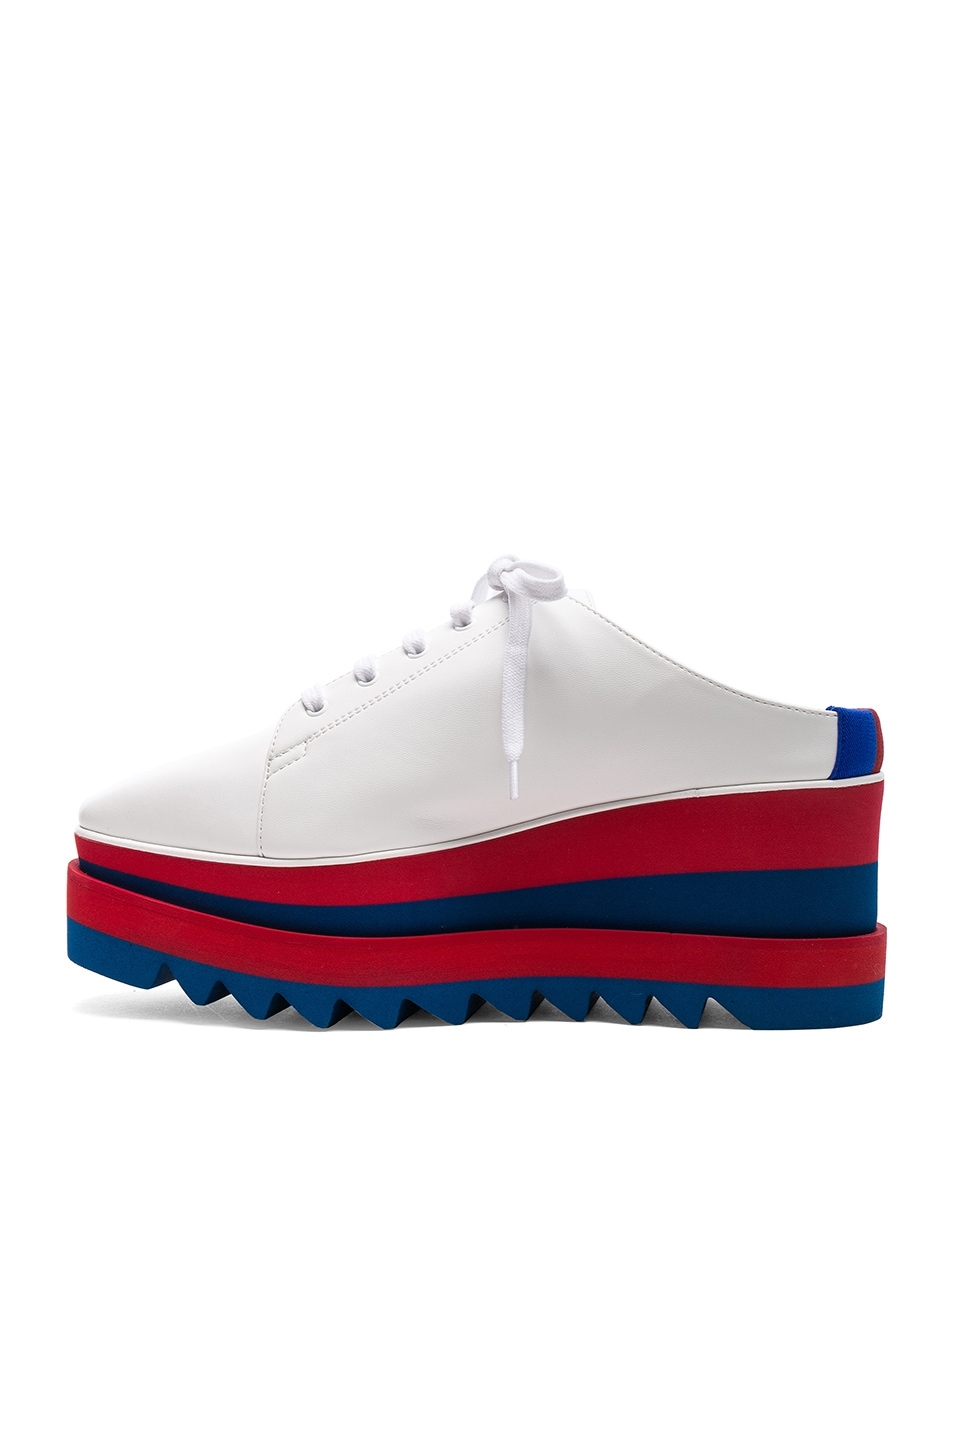 Image 5 of Stella McCartney Platform Wedge Oxford Mules in White, Red & Blue